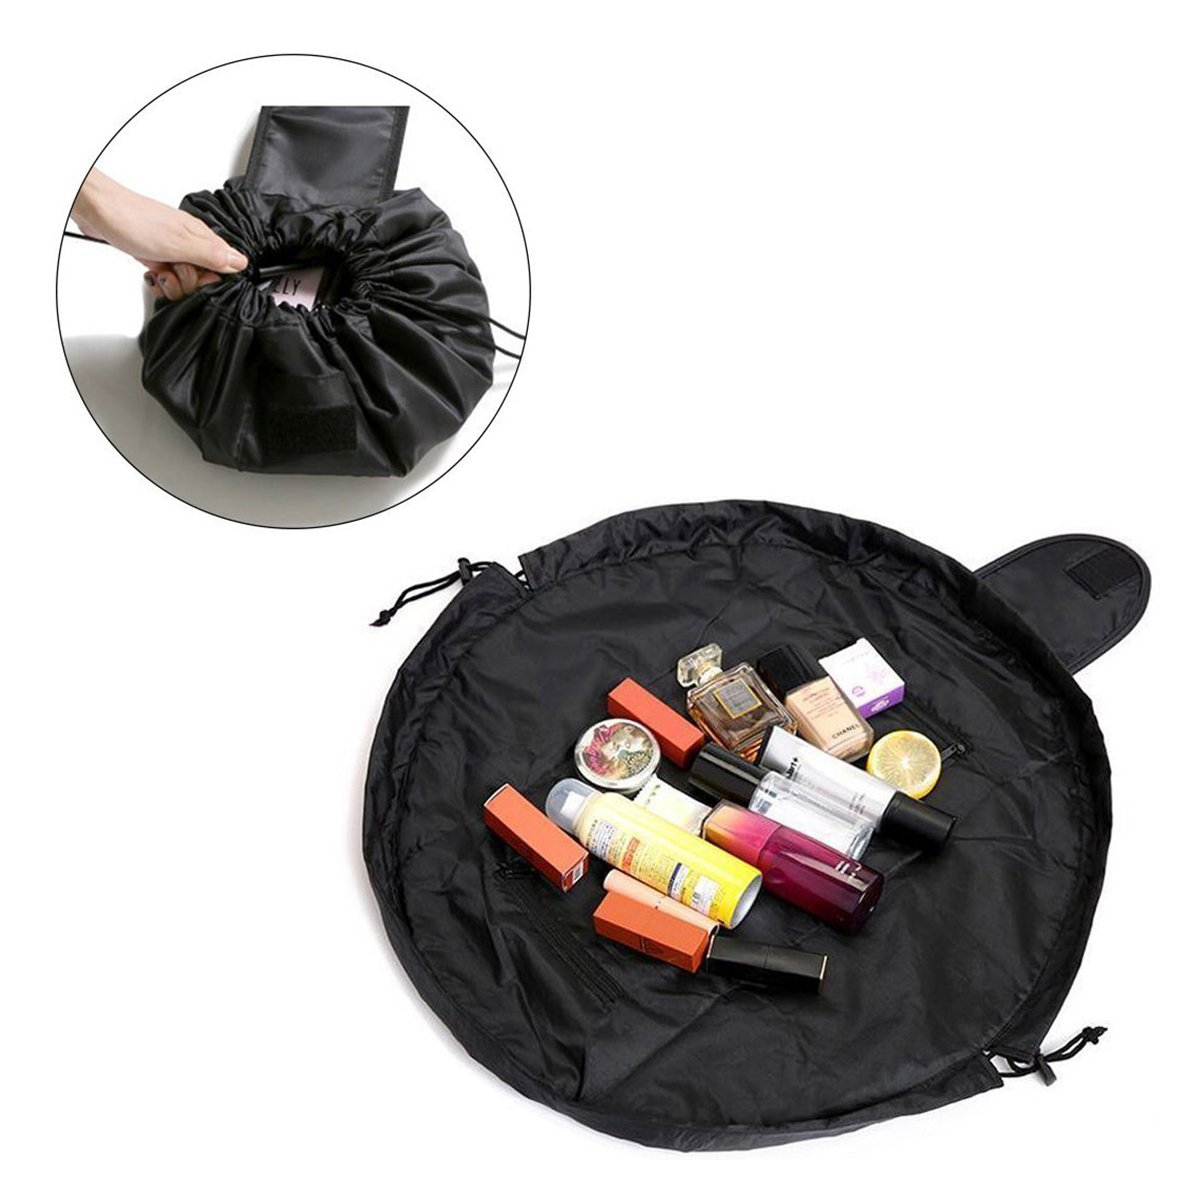 Makeup Bag, Esther Beauty Portable Travel Cosmetic bag Makeup Storage Organizer with Zipper and Drawstring (Black) Esther Beauty SBABC001